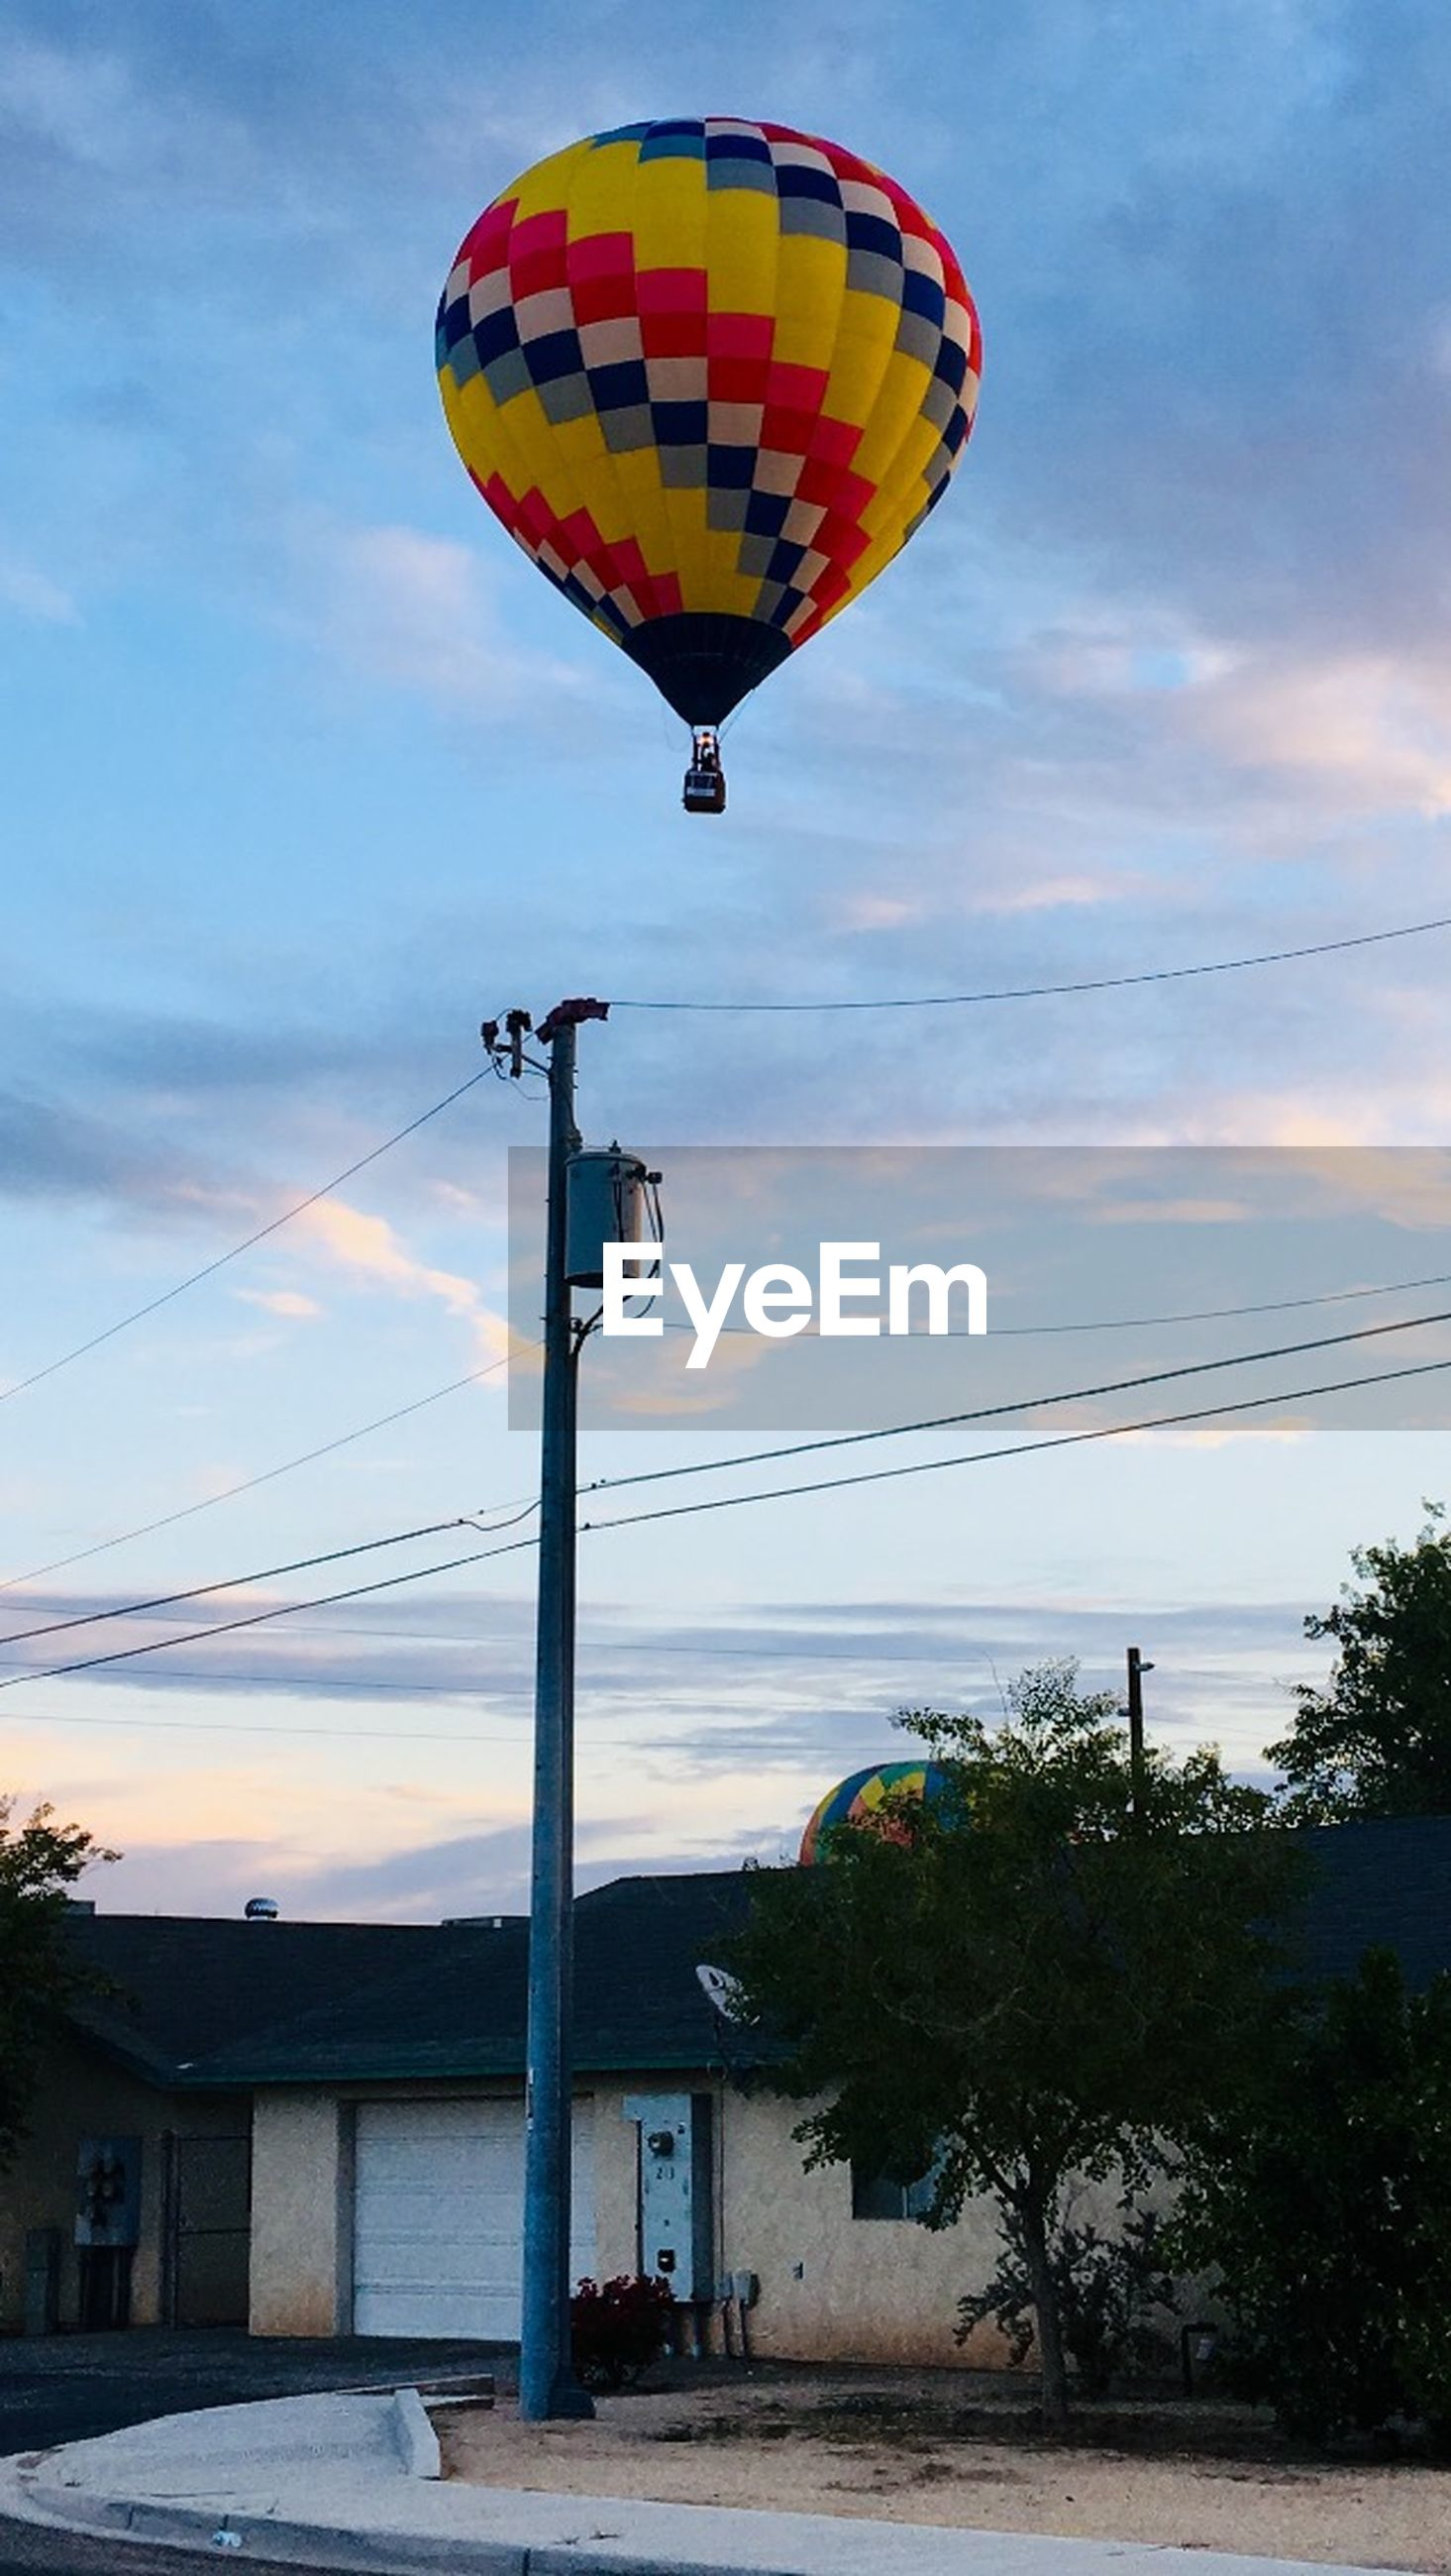 sky, transportation, nature, cloud - sky, low angle view, plant, tree, balloon, architecture, built structure, building exterior, no people, flying, outdoors, air vehicle, mid-air, hot air balloon, adventure, day, mode of transportation